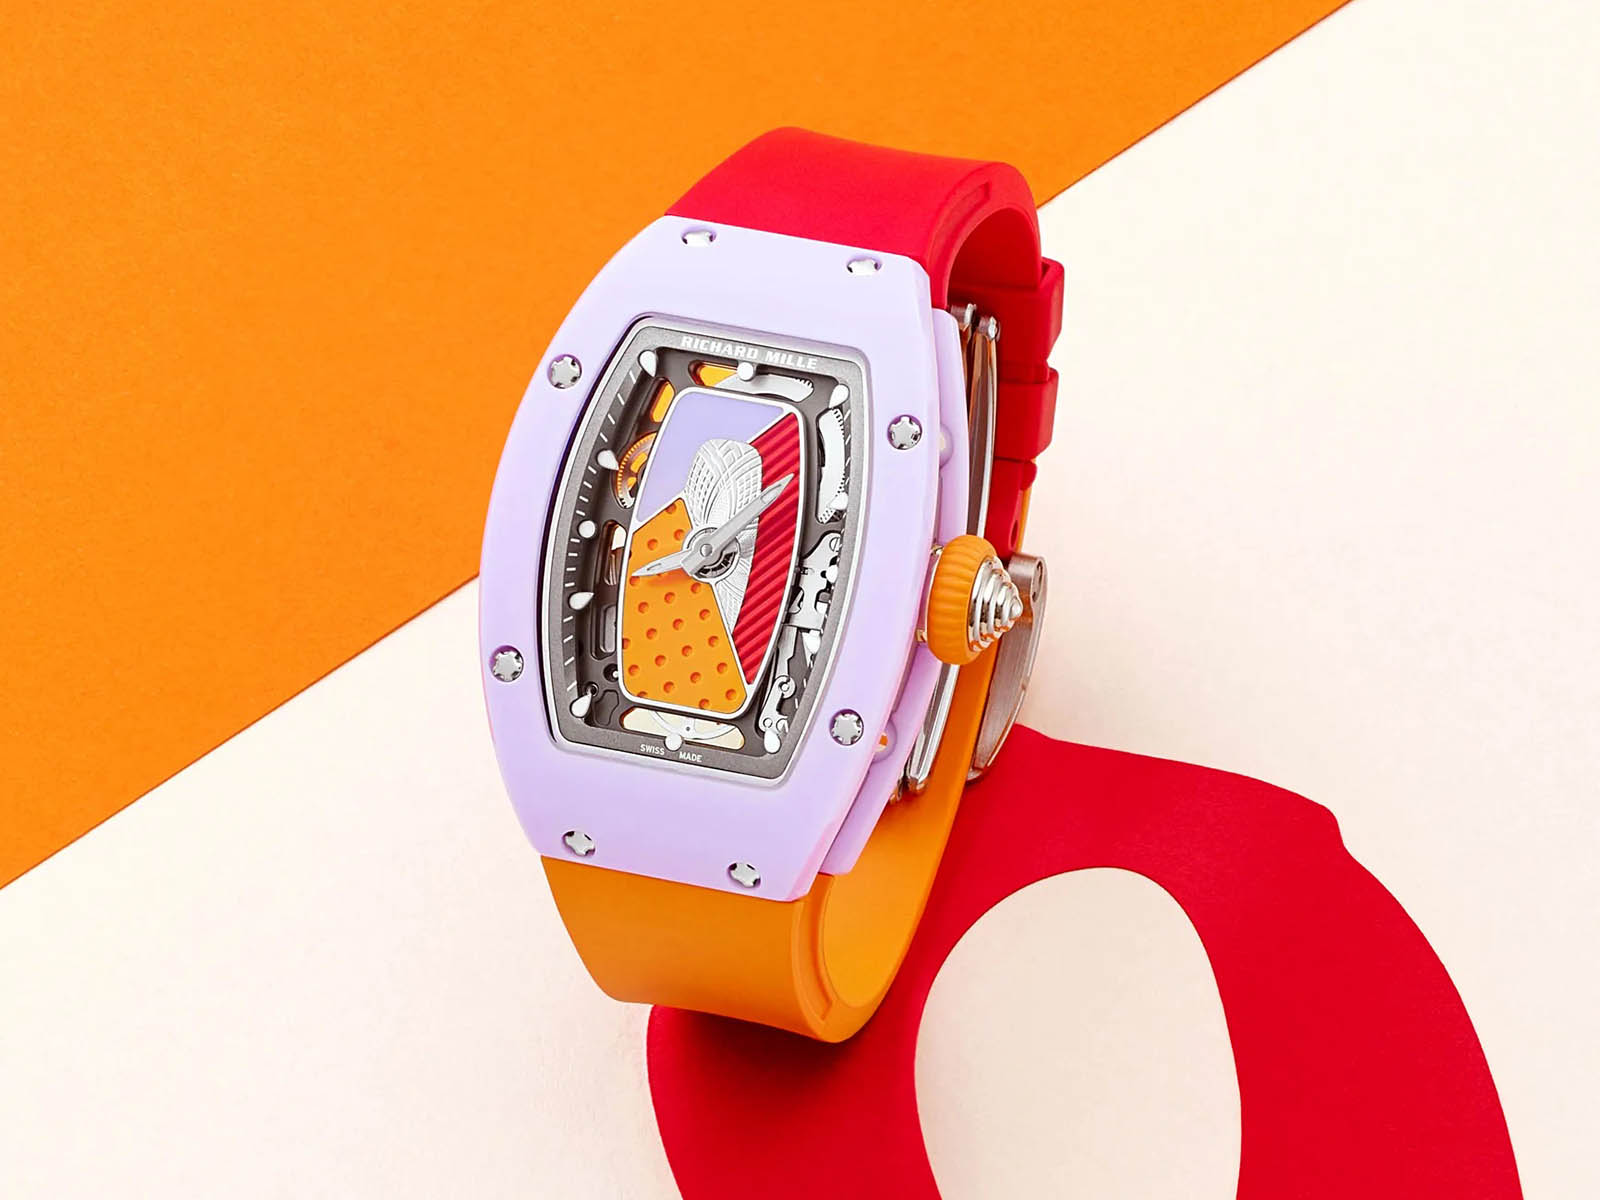 richard-mille-rm-07-01-colored-ceramics-collection-6.jpg